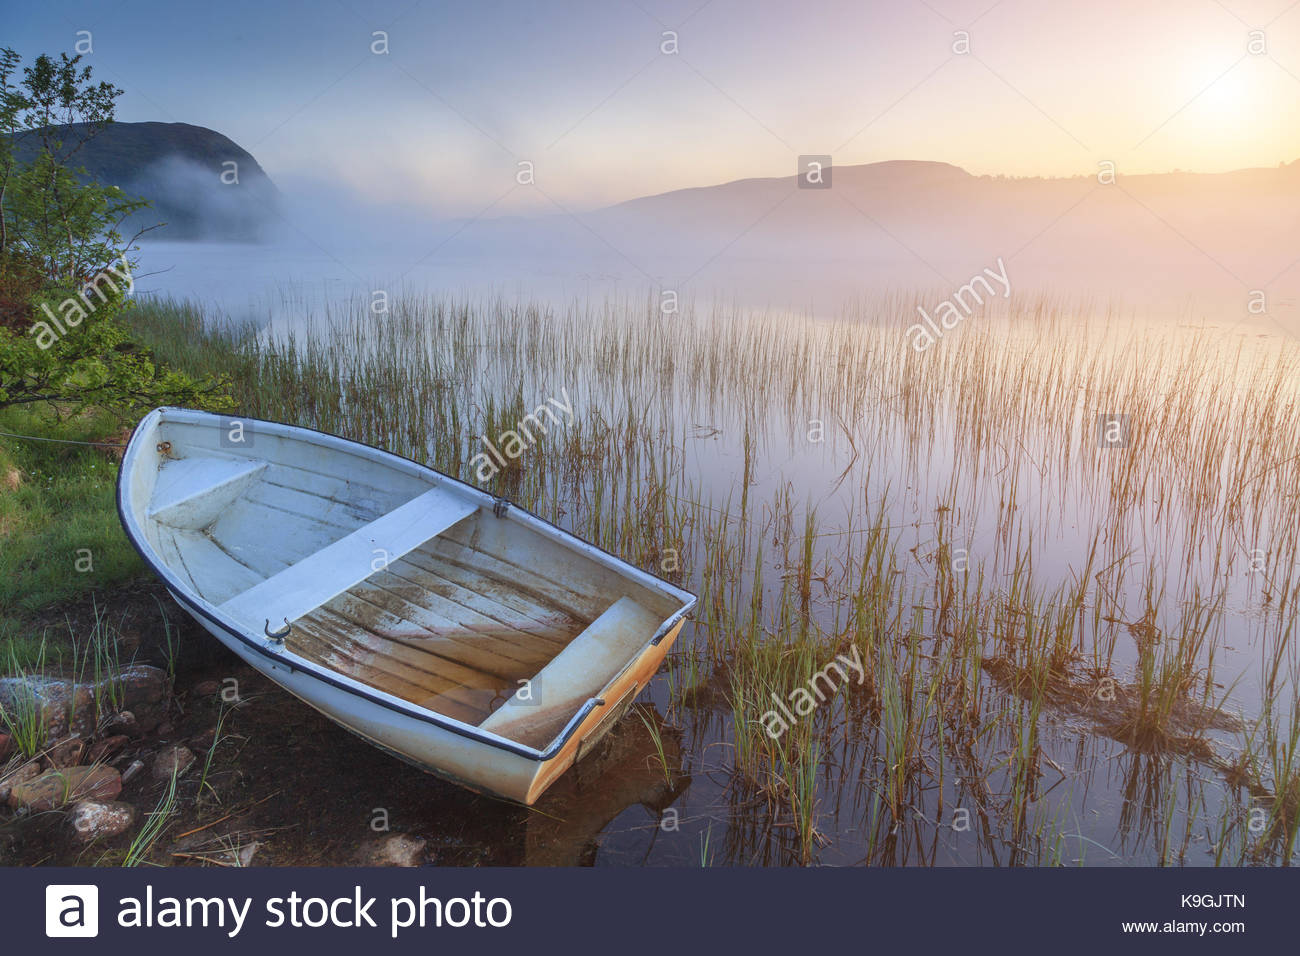 Boat on the shore of a misty lake on a summer morning - Stock Image